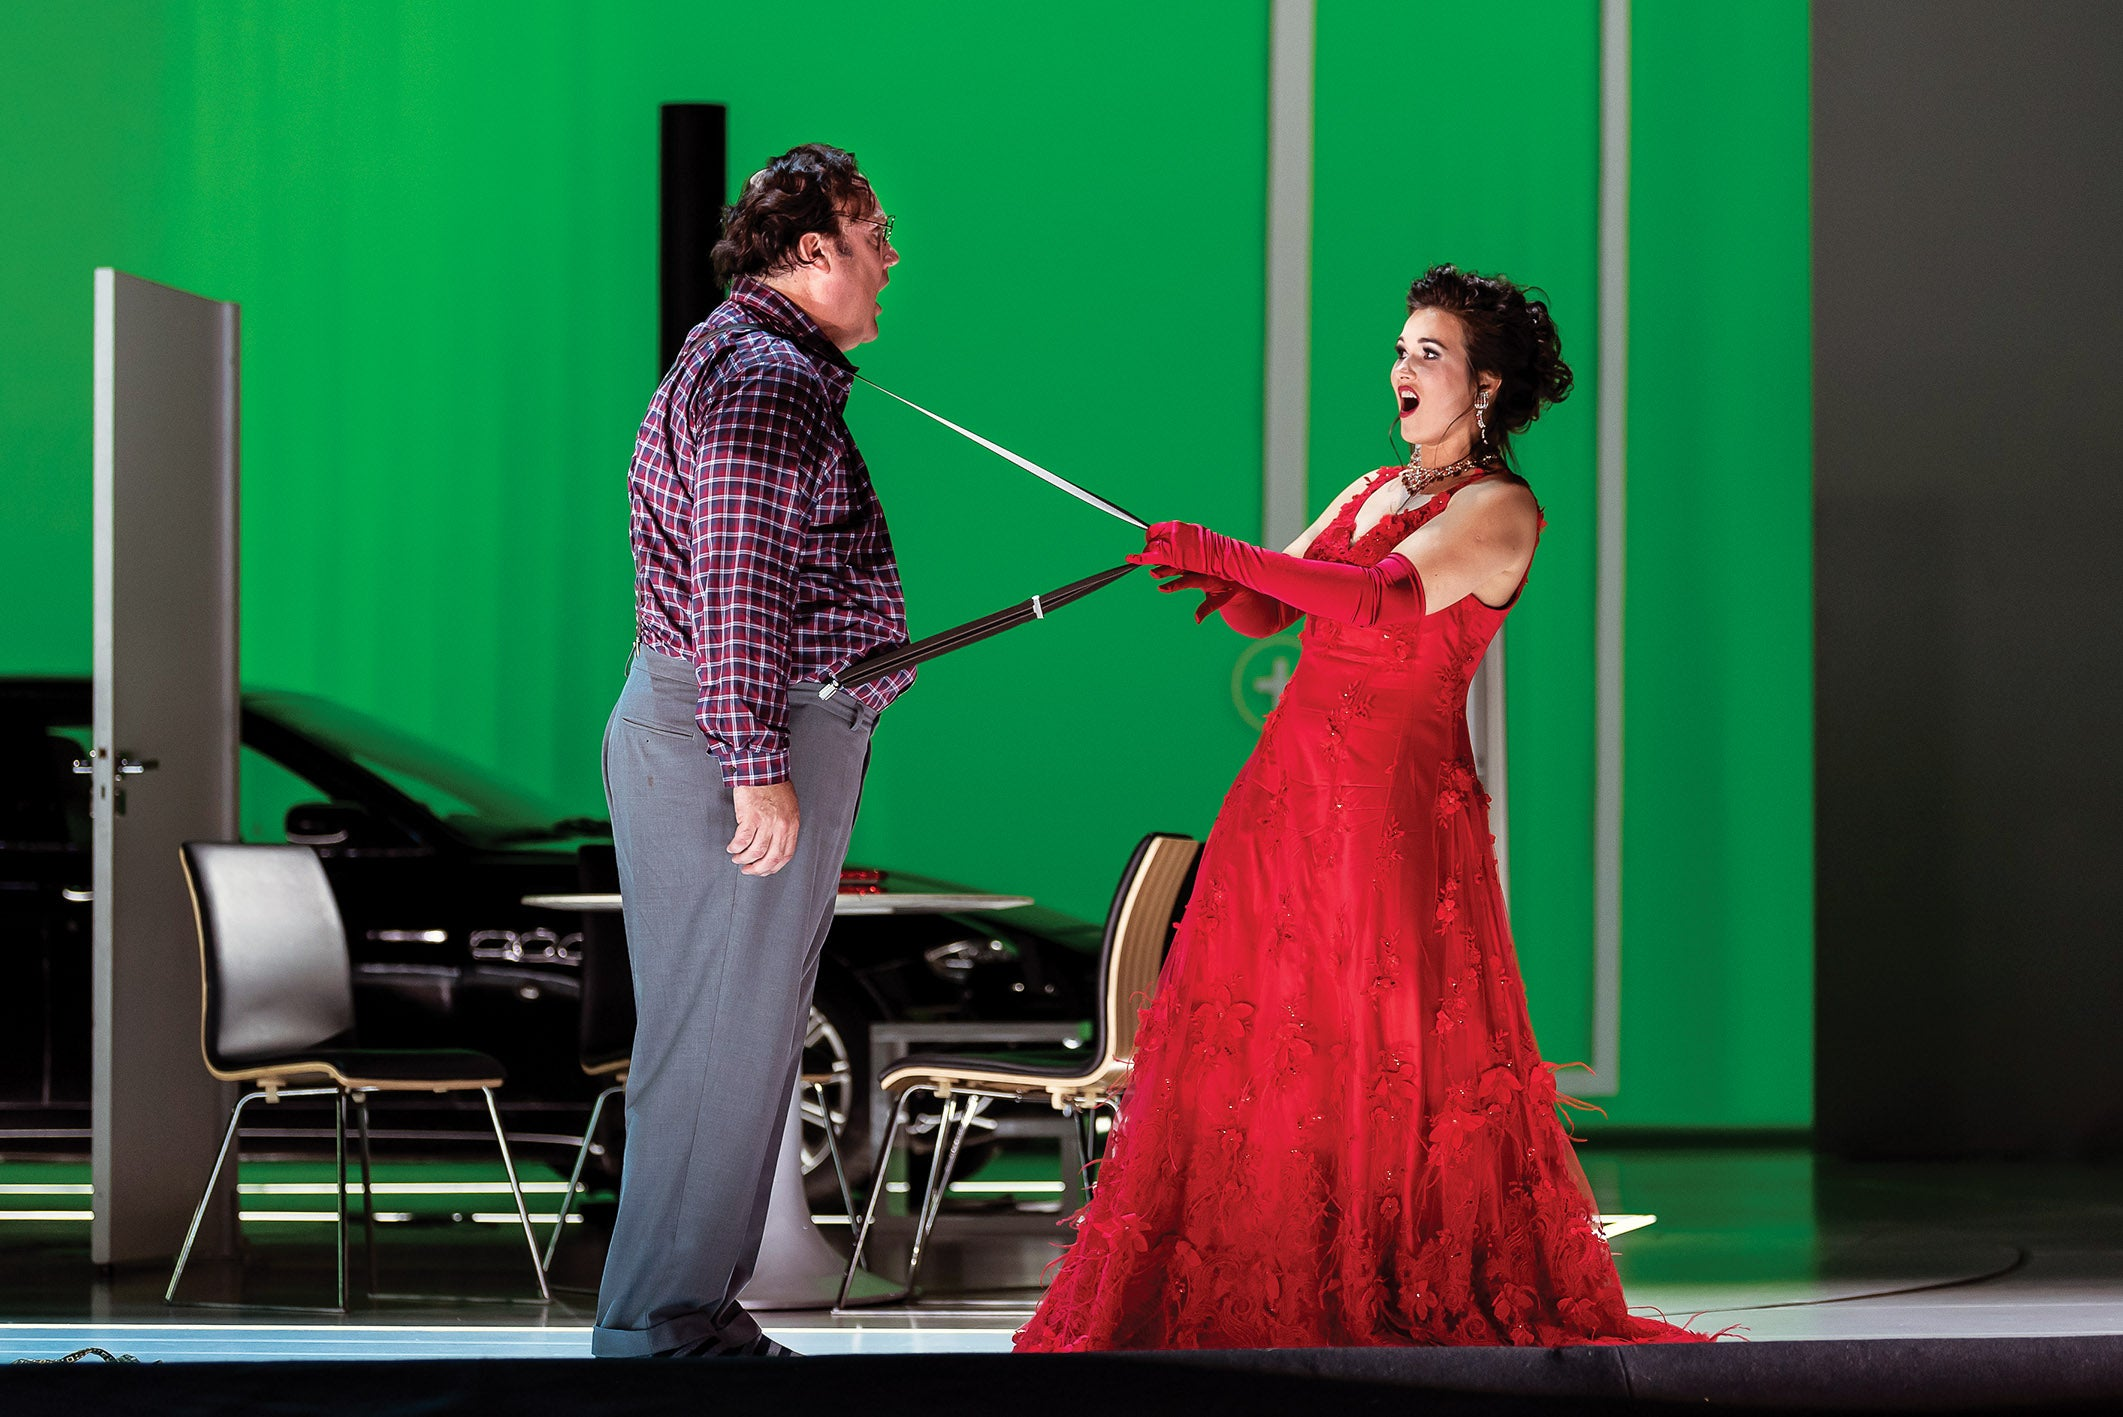 Don Pasquale at the Royal Opera House: a muted take on an old comedy